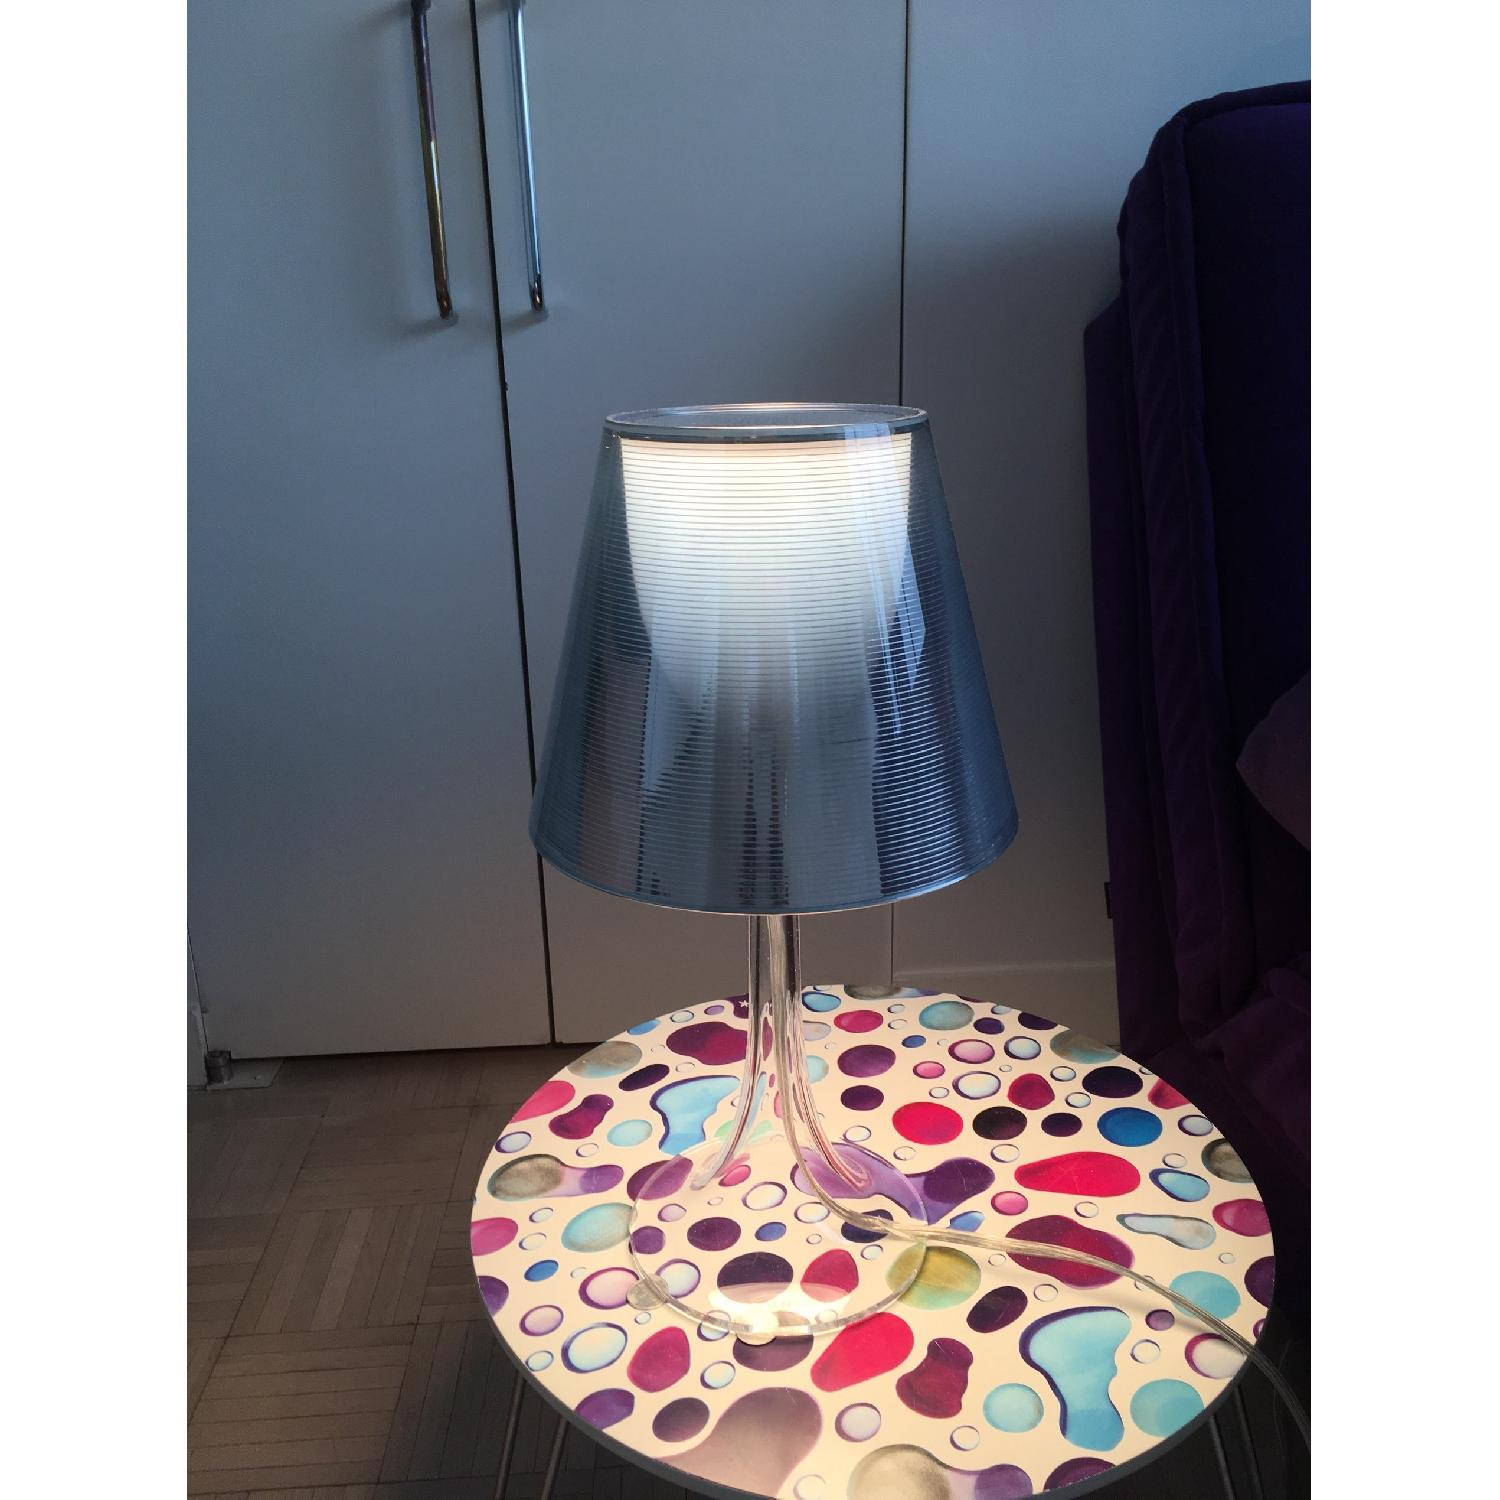 ... Philippe Starcks Miss K Table Lamp 2